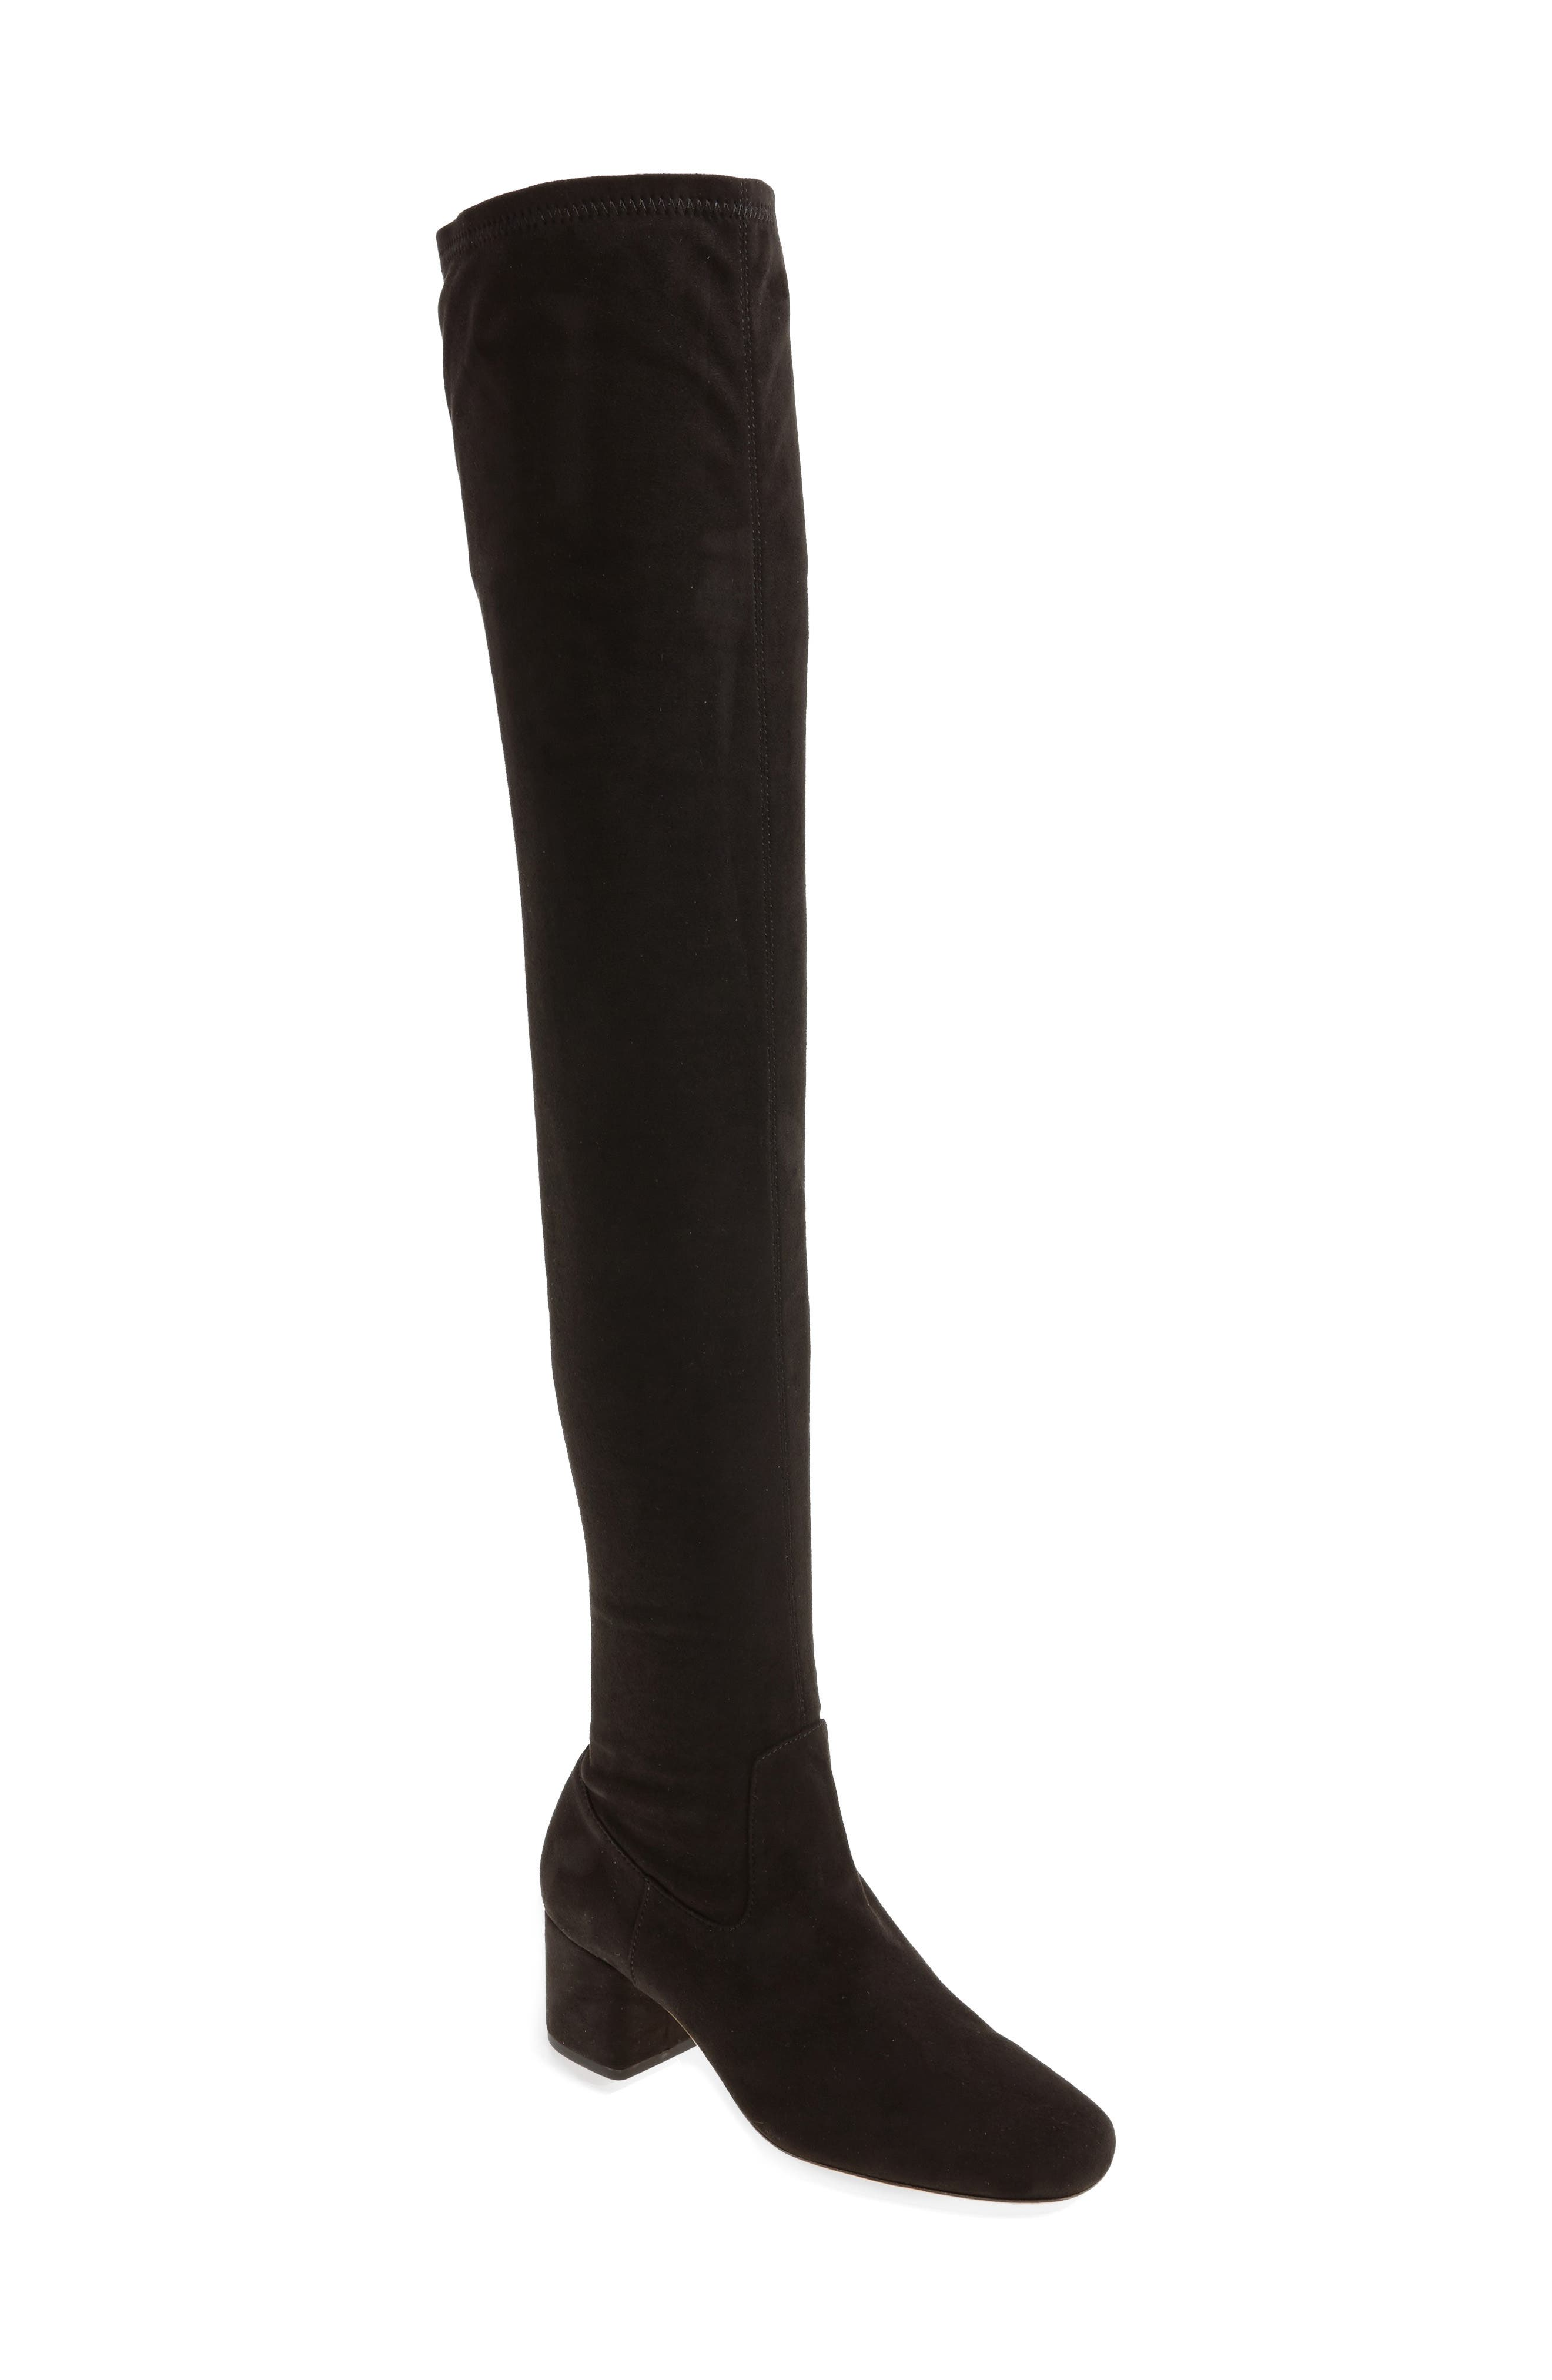 Amani Over the Knee Boot,                             Main thumbnail 1, color,                             Black Suede